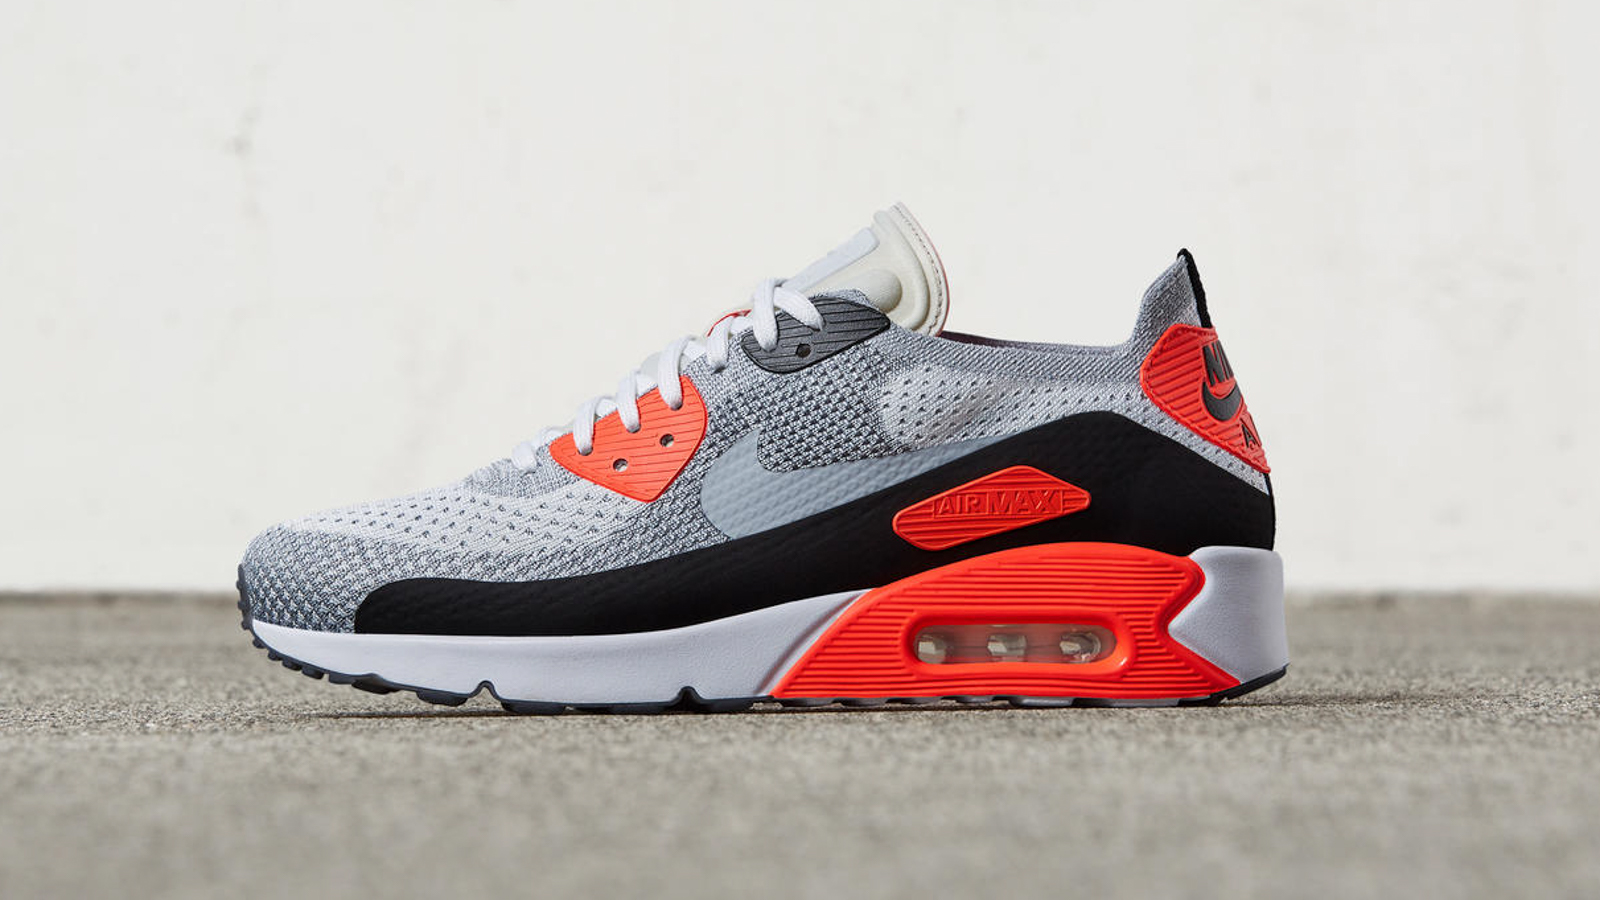 2010 Air Max 90 Flyknit Infrarouge